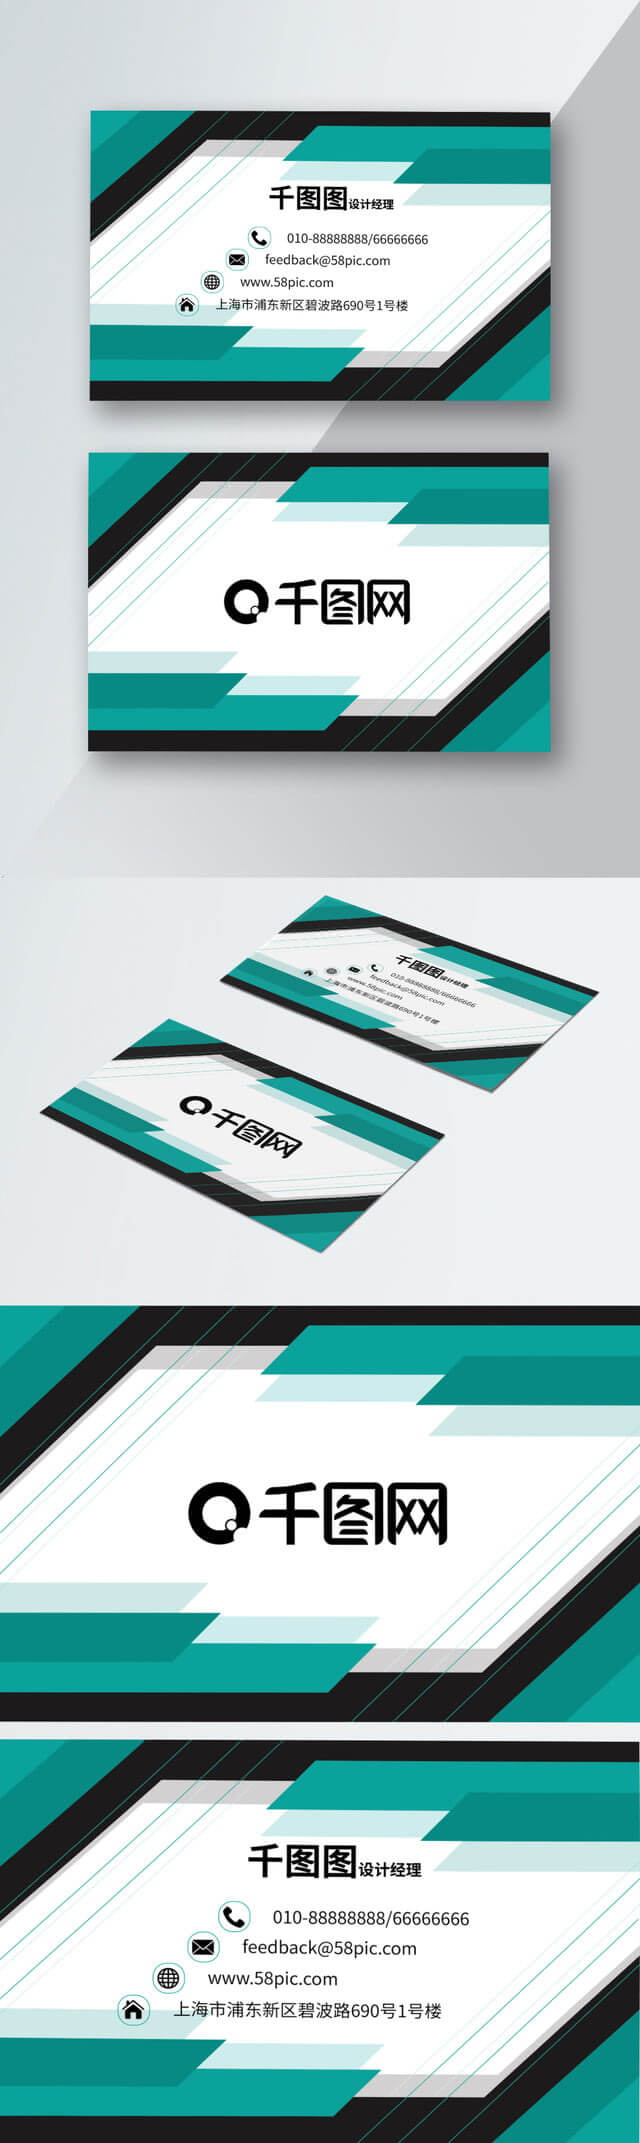 Boutique Plaster Line Business Card Decoration Company Intended For Plastering Business Cards Templates